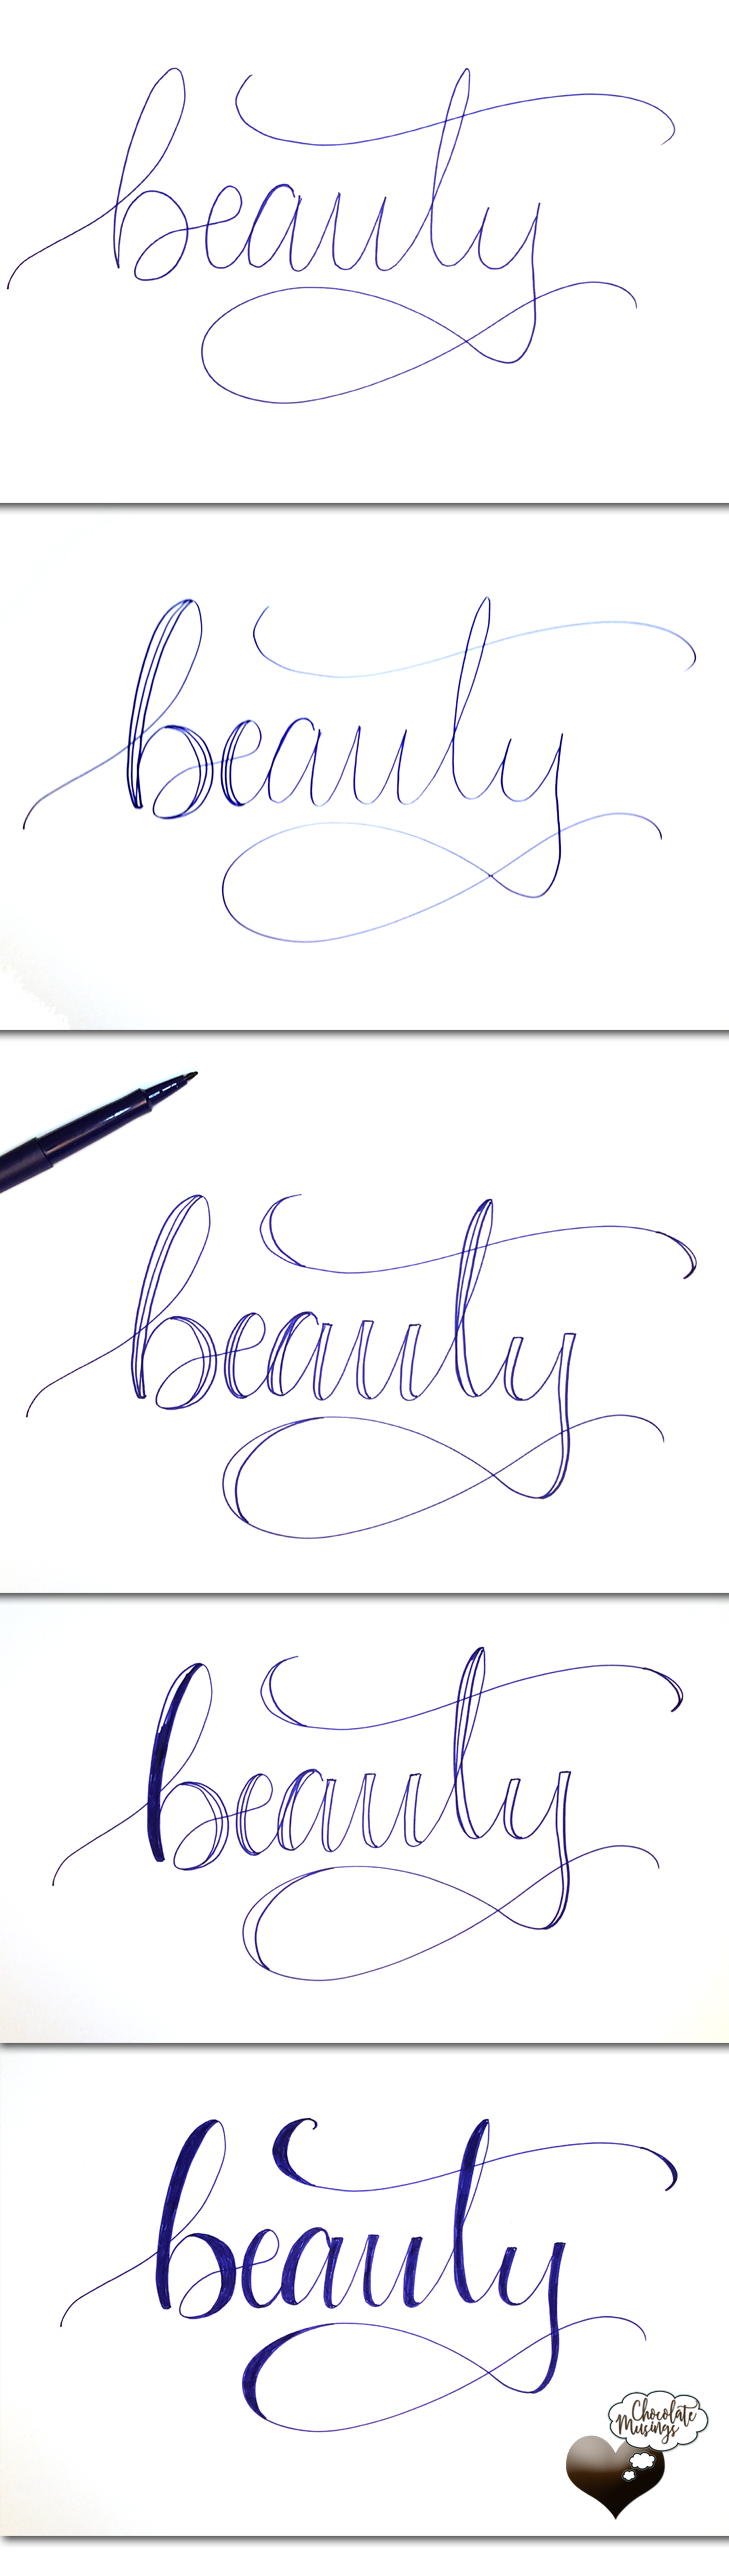 Faux Calligraphy, Modern Calligraphy, hand lettering, what ever it is called, there is a process and it is beautiful